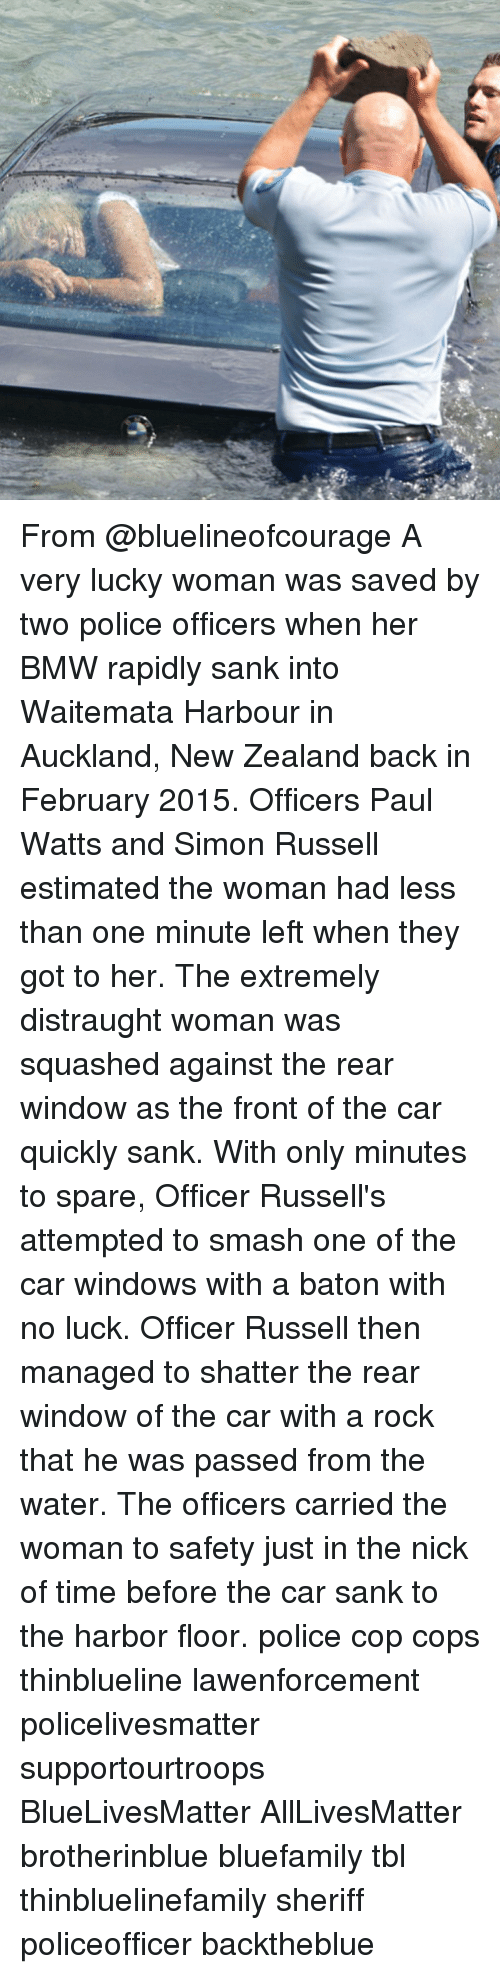 no luck: From @bluelineofcourage A very lucky woman was saved by two police officers when her BMW rapidly sank into Waitemata Harbour in Auckland, New Zealand back in February 2015. Officers Paul Watts and Simon Russell estimated the woman had less than one minute left when they got to her. The extremely distraught woman was squashed against the rear window as the front of the car quickly sank. With only minutes to spare, Officer Russell's attempted to smash one of the car windows with a baton with no luck. Officer Russell then managed to shatter the rear window of the car with a rock that he was passed from the water. The officers carried the woman to safety just in the nick of time before the car sank to the harbor floor. police cop cops thinblueline lawenforcement policelivesmatter supportourtroops BlueLivesMatter AllLivesMatter brotherinblue bluefamily tbl thinbluelinefamily sheriff policeofficer backtheblue